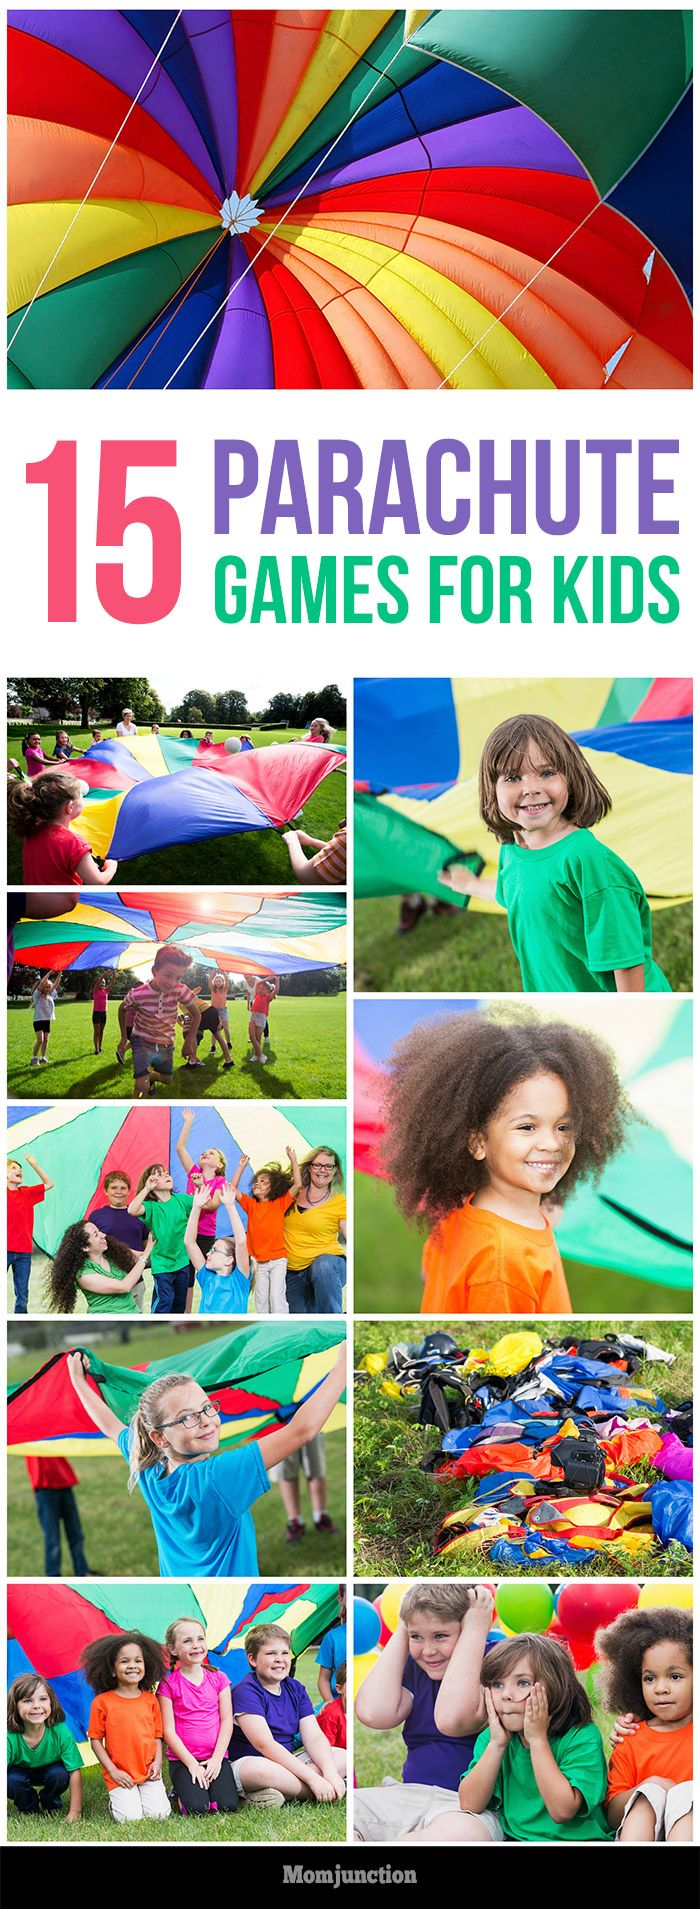 Top 15 Parachute Games For Kids gear